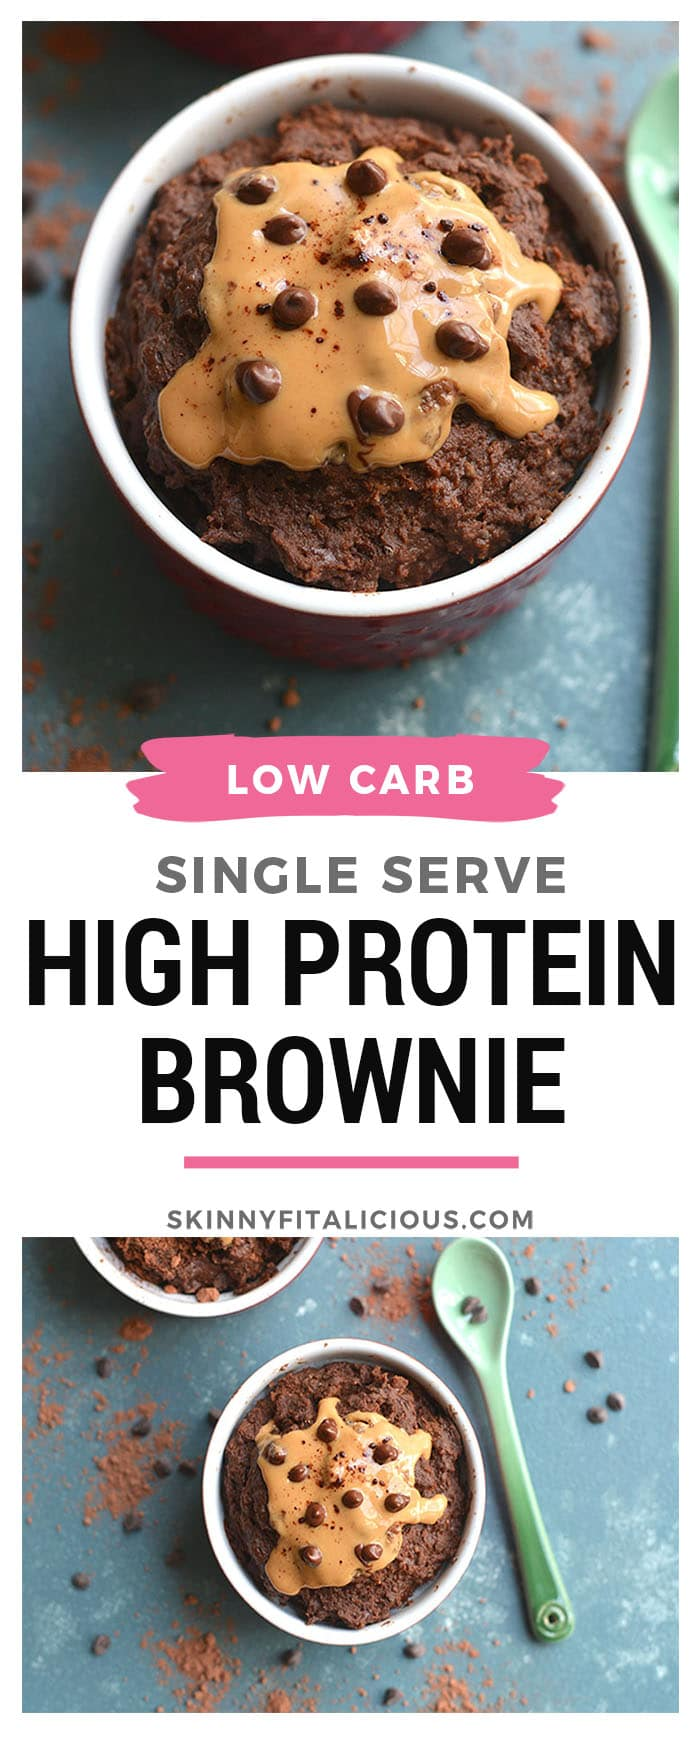 Single Serve High Protein Brownie! Get your chocolate fix with this easy 5-minute microwave brownie recipe. Loaded with protein & healthy fat, this sweet treat is perfect for those watching their weight, counting macros or who want to eat chocolate without going overboard! Gluten Free + Low Calorie + Low Carb + Paleo